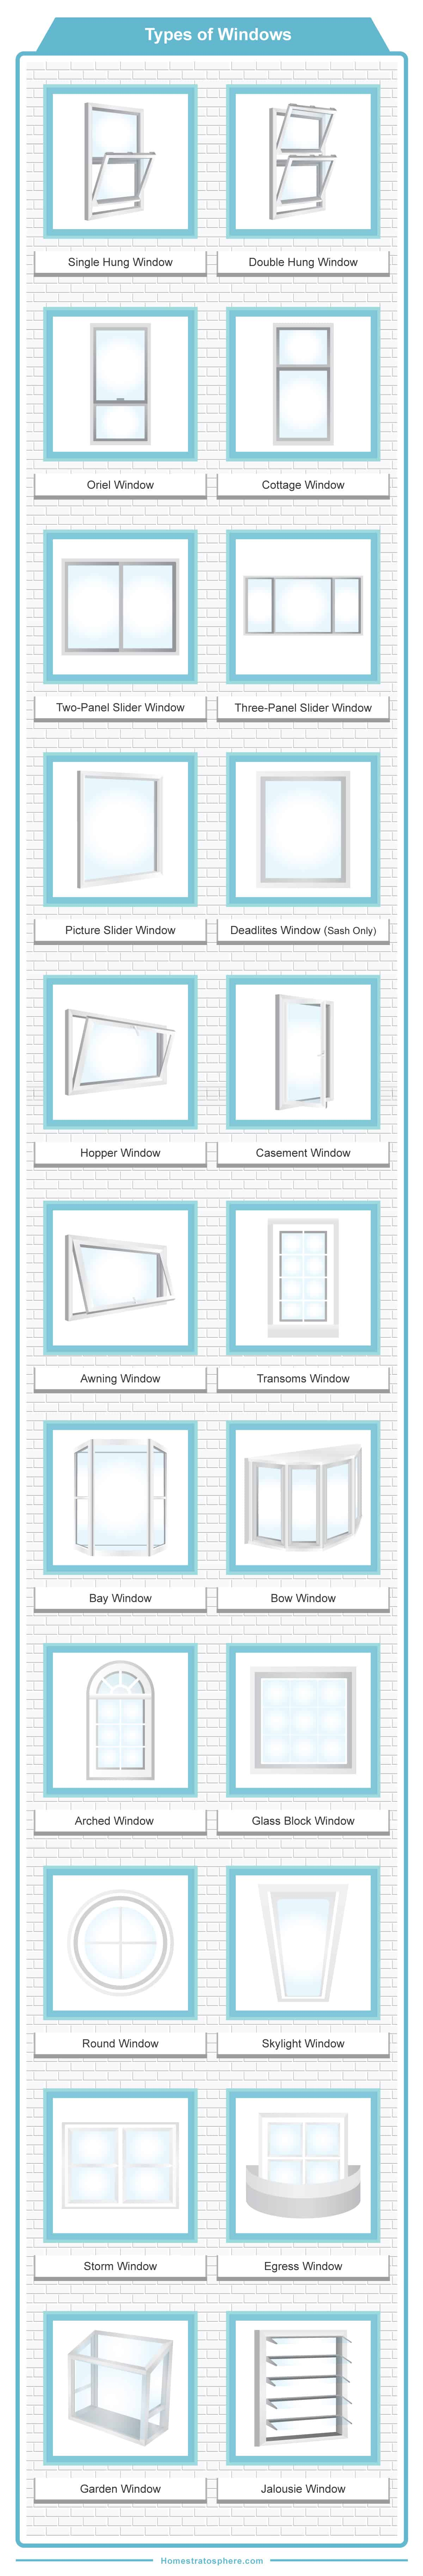 Types of window overview chart diagram showing 23 different types of windows